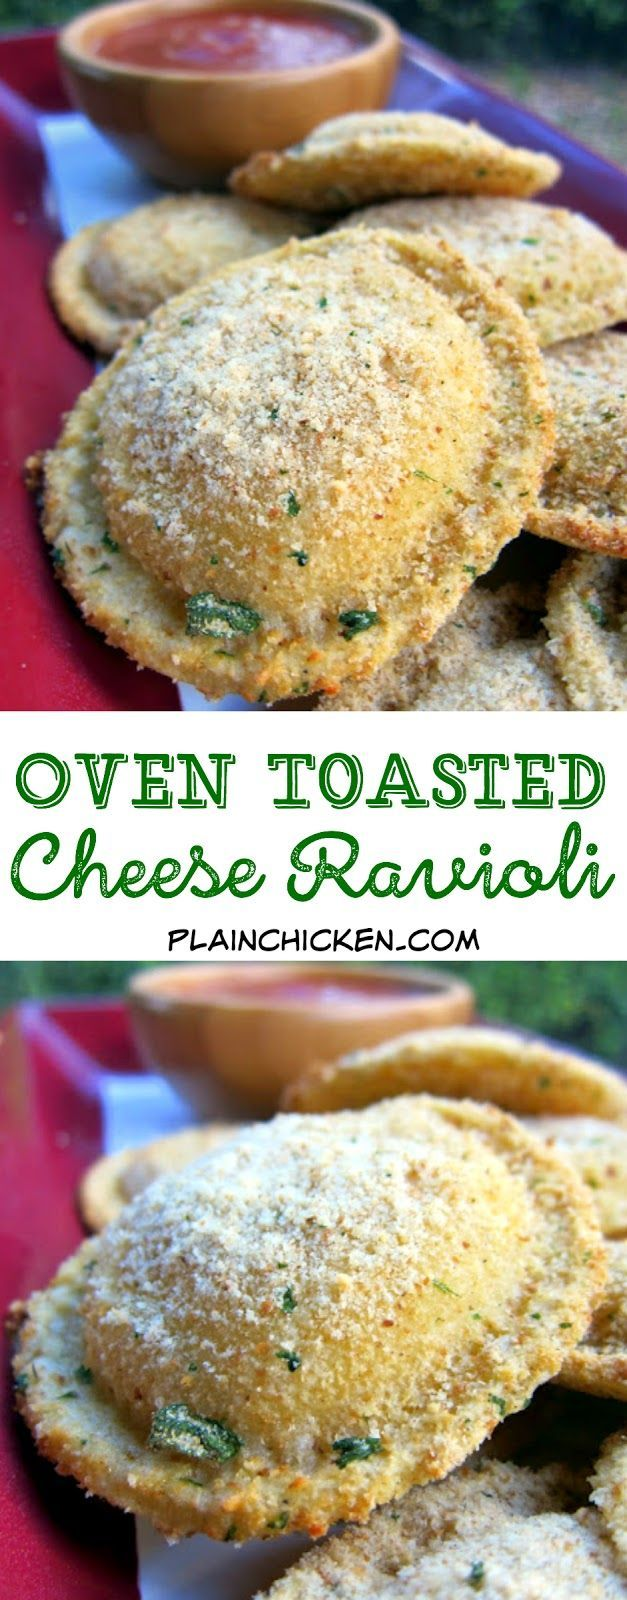 Oven Toasted Ravioli - baked not fried! SO easy and ready in about 15 minutes. Great for parties! Frozen ravioli, coated in parmesan cheese and baked. Dip in warm marinara or pesto.